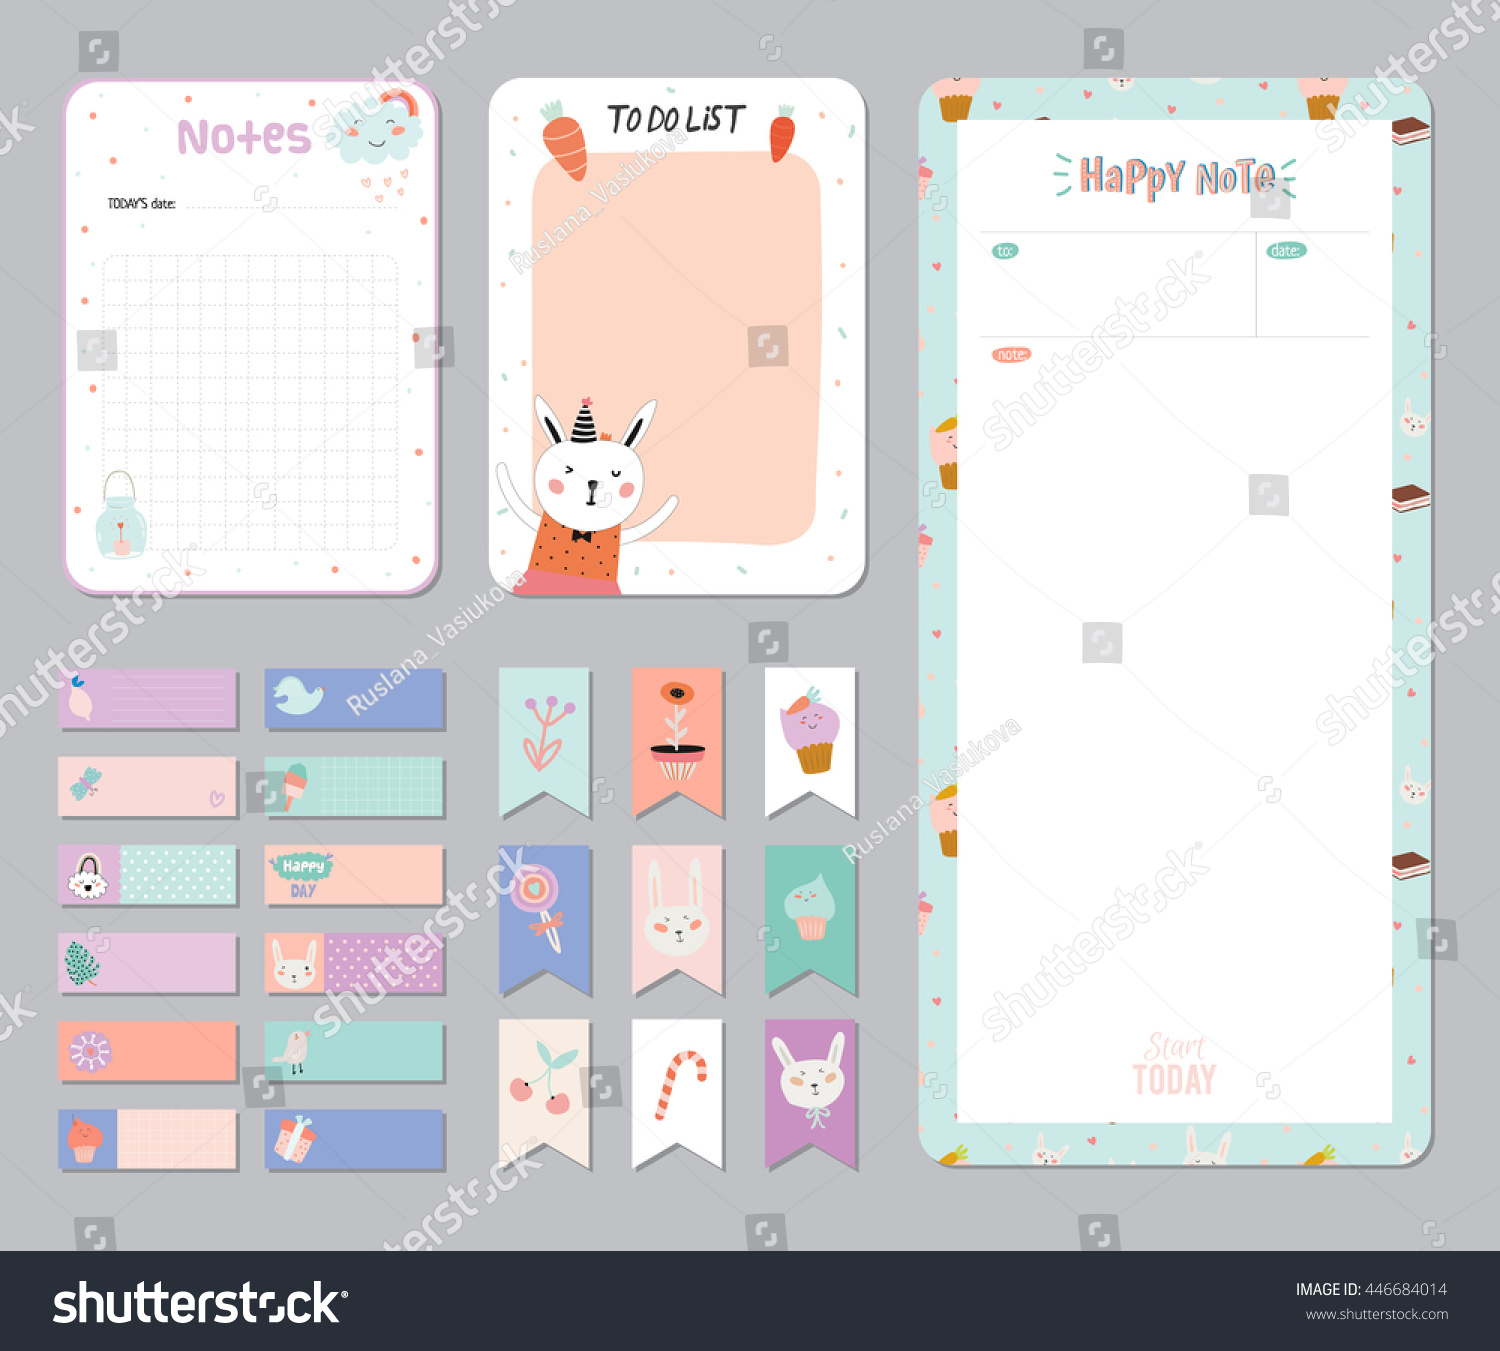 Calendar Planner Sample : Cute calendar daily weekly planner template stock vector